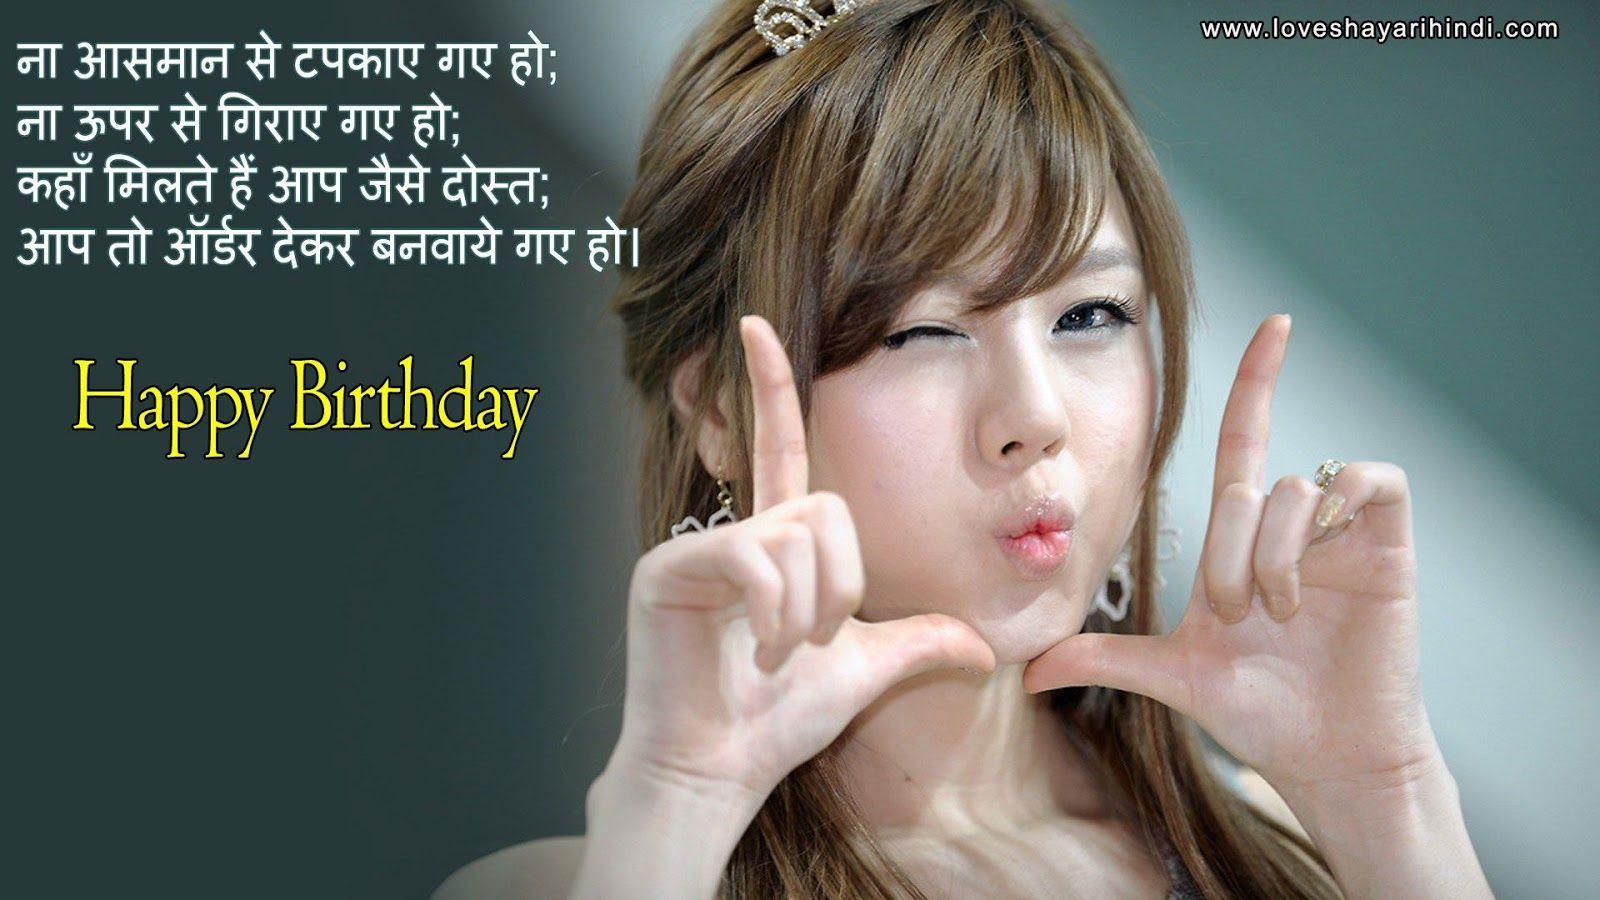 Top 15+ Funny Happy Birthday Wishes in Hindi Cute girl